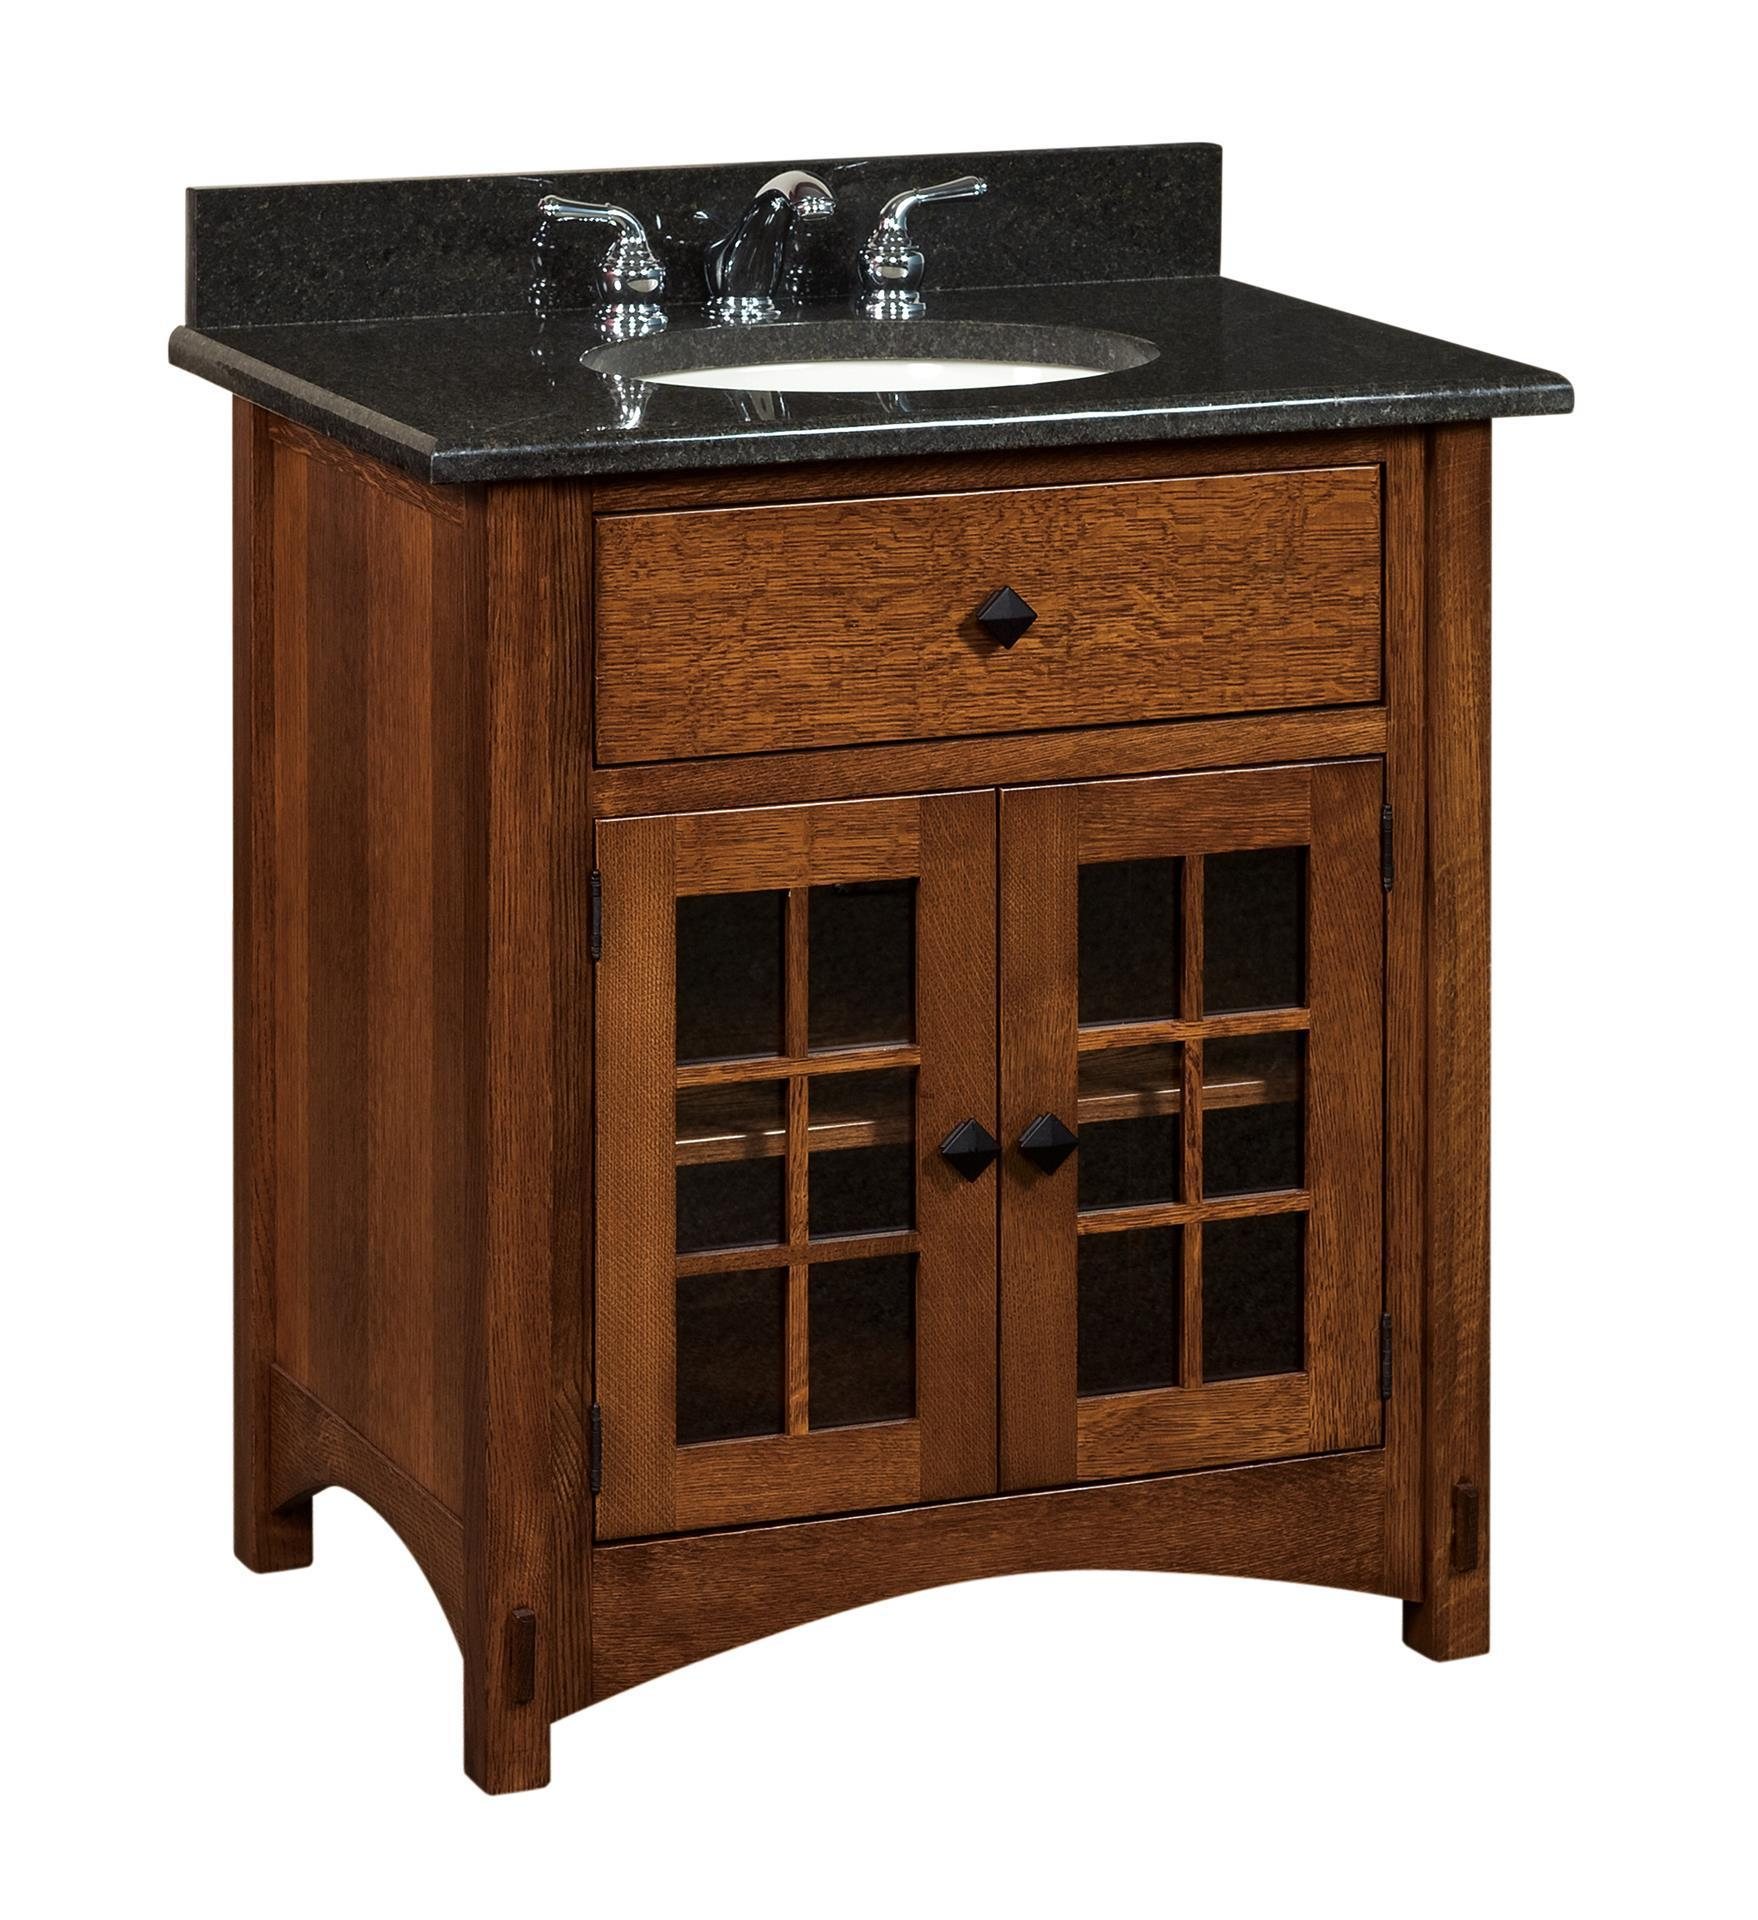 Sensational Amish Bathroom Vanity Solid Wood 33 Lucern Mission Sink Console Download Free Architecture Designs Embacsunscenecom